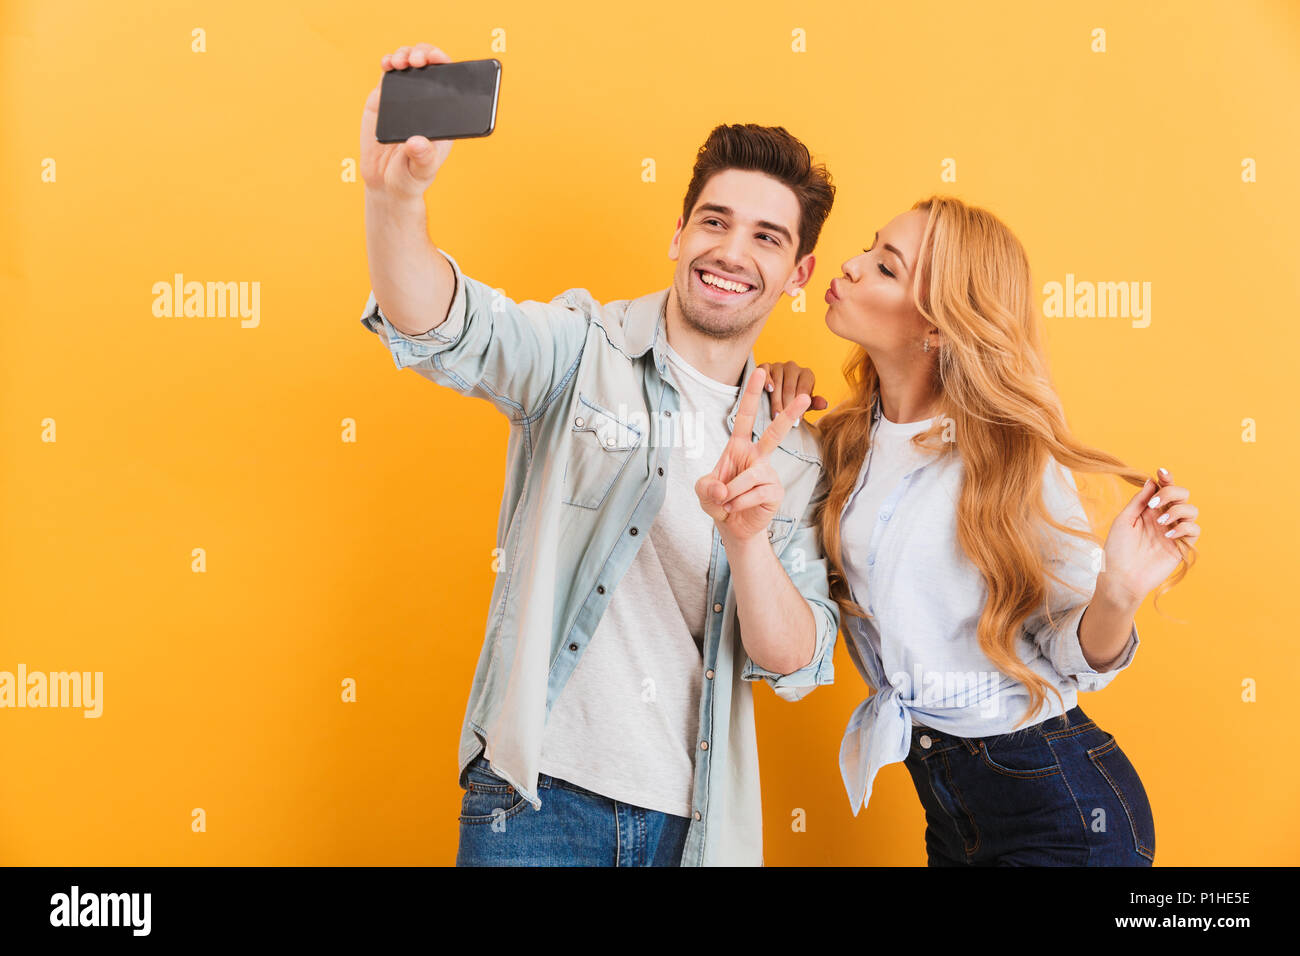 Portrait of lovely couple taking selfie photo on cell phone while woman kissing man on his cheek isolated over yellow background - Stock Image